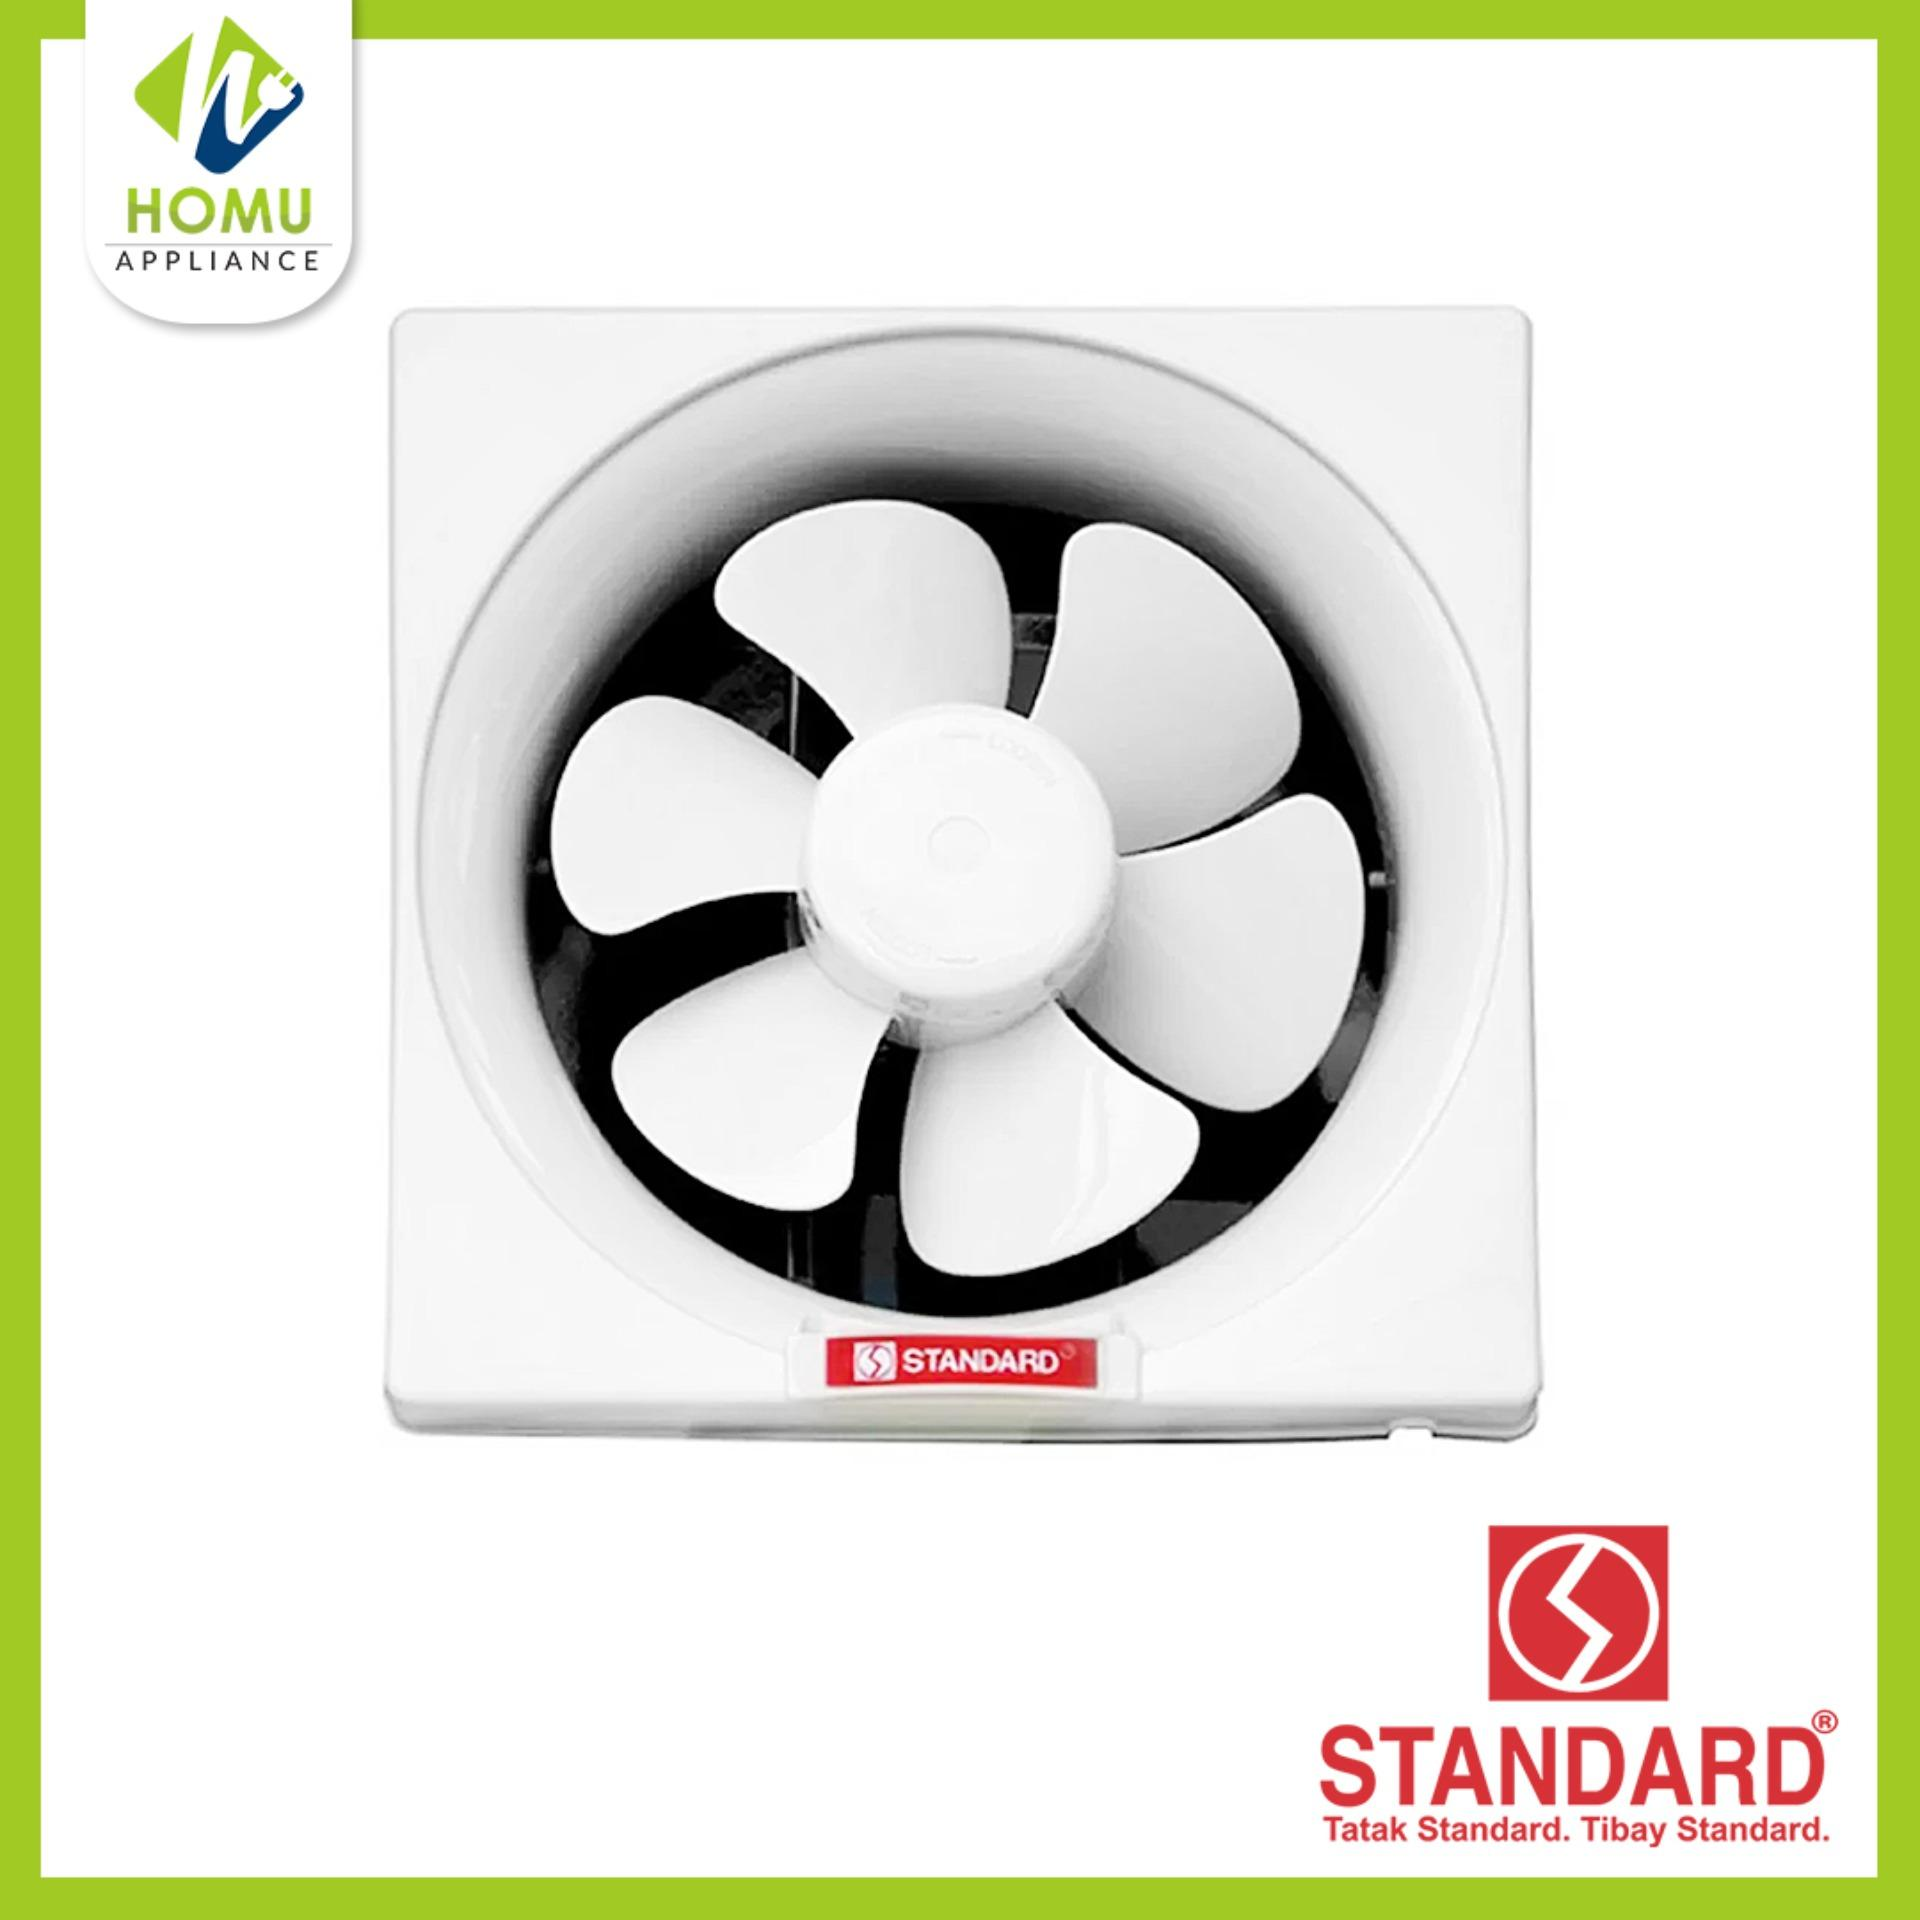 Exhaust Fan For Sale Cooling Prices Brands Review In How To Control An Electric With A Factory Thermoswitch Apps Standard Sef 8a